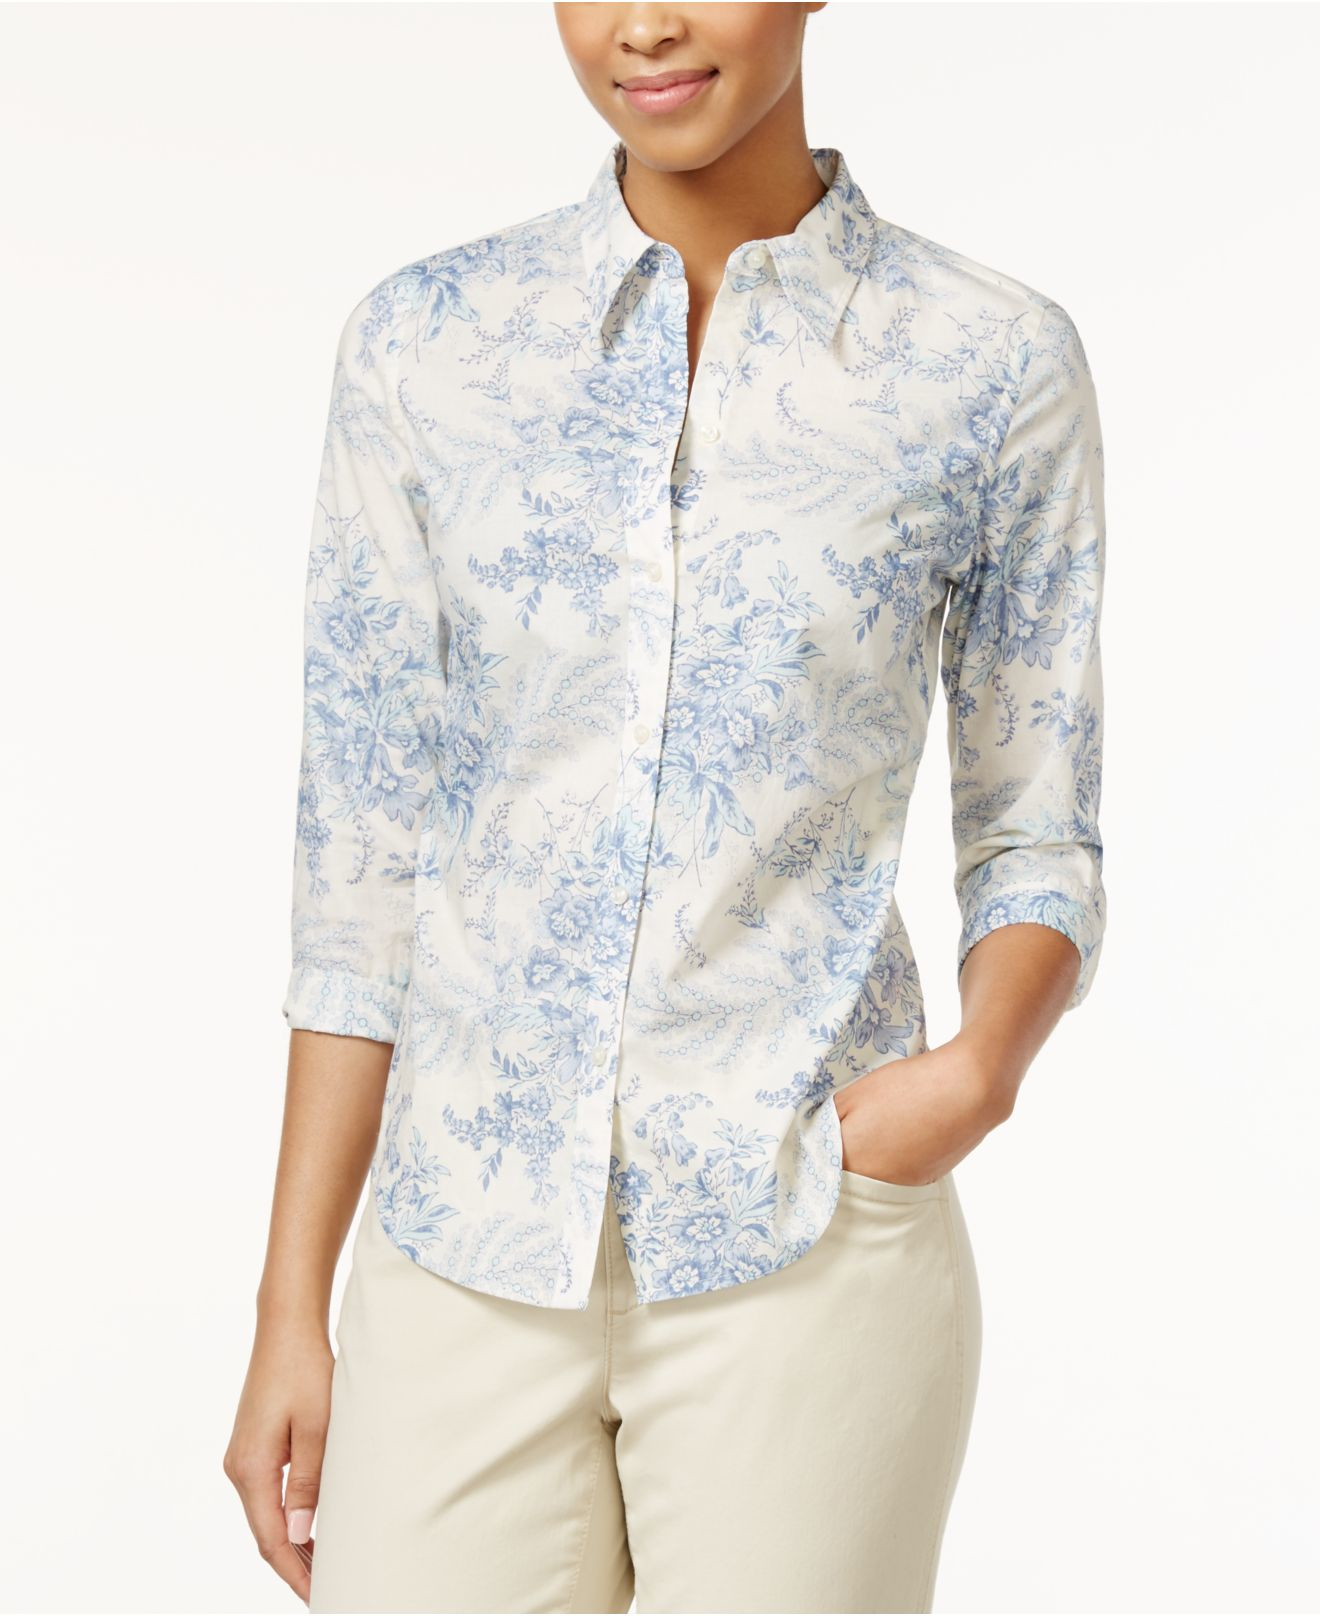 Lyst American Living Printed Floral Button Down Shirt